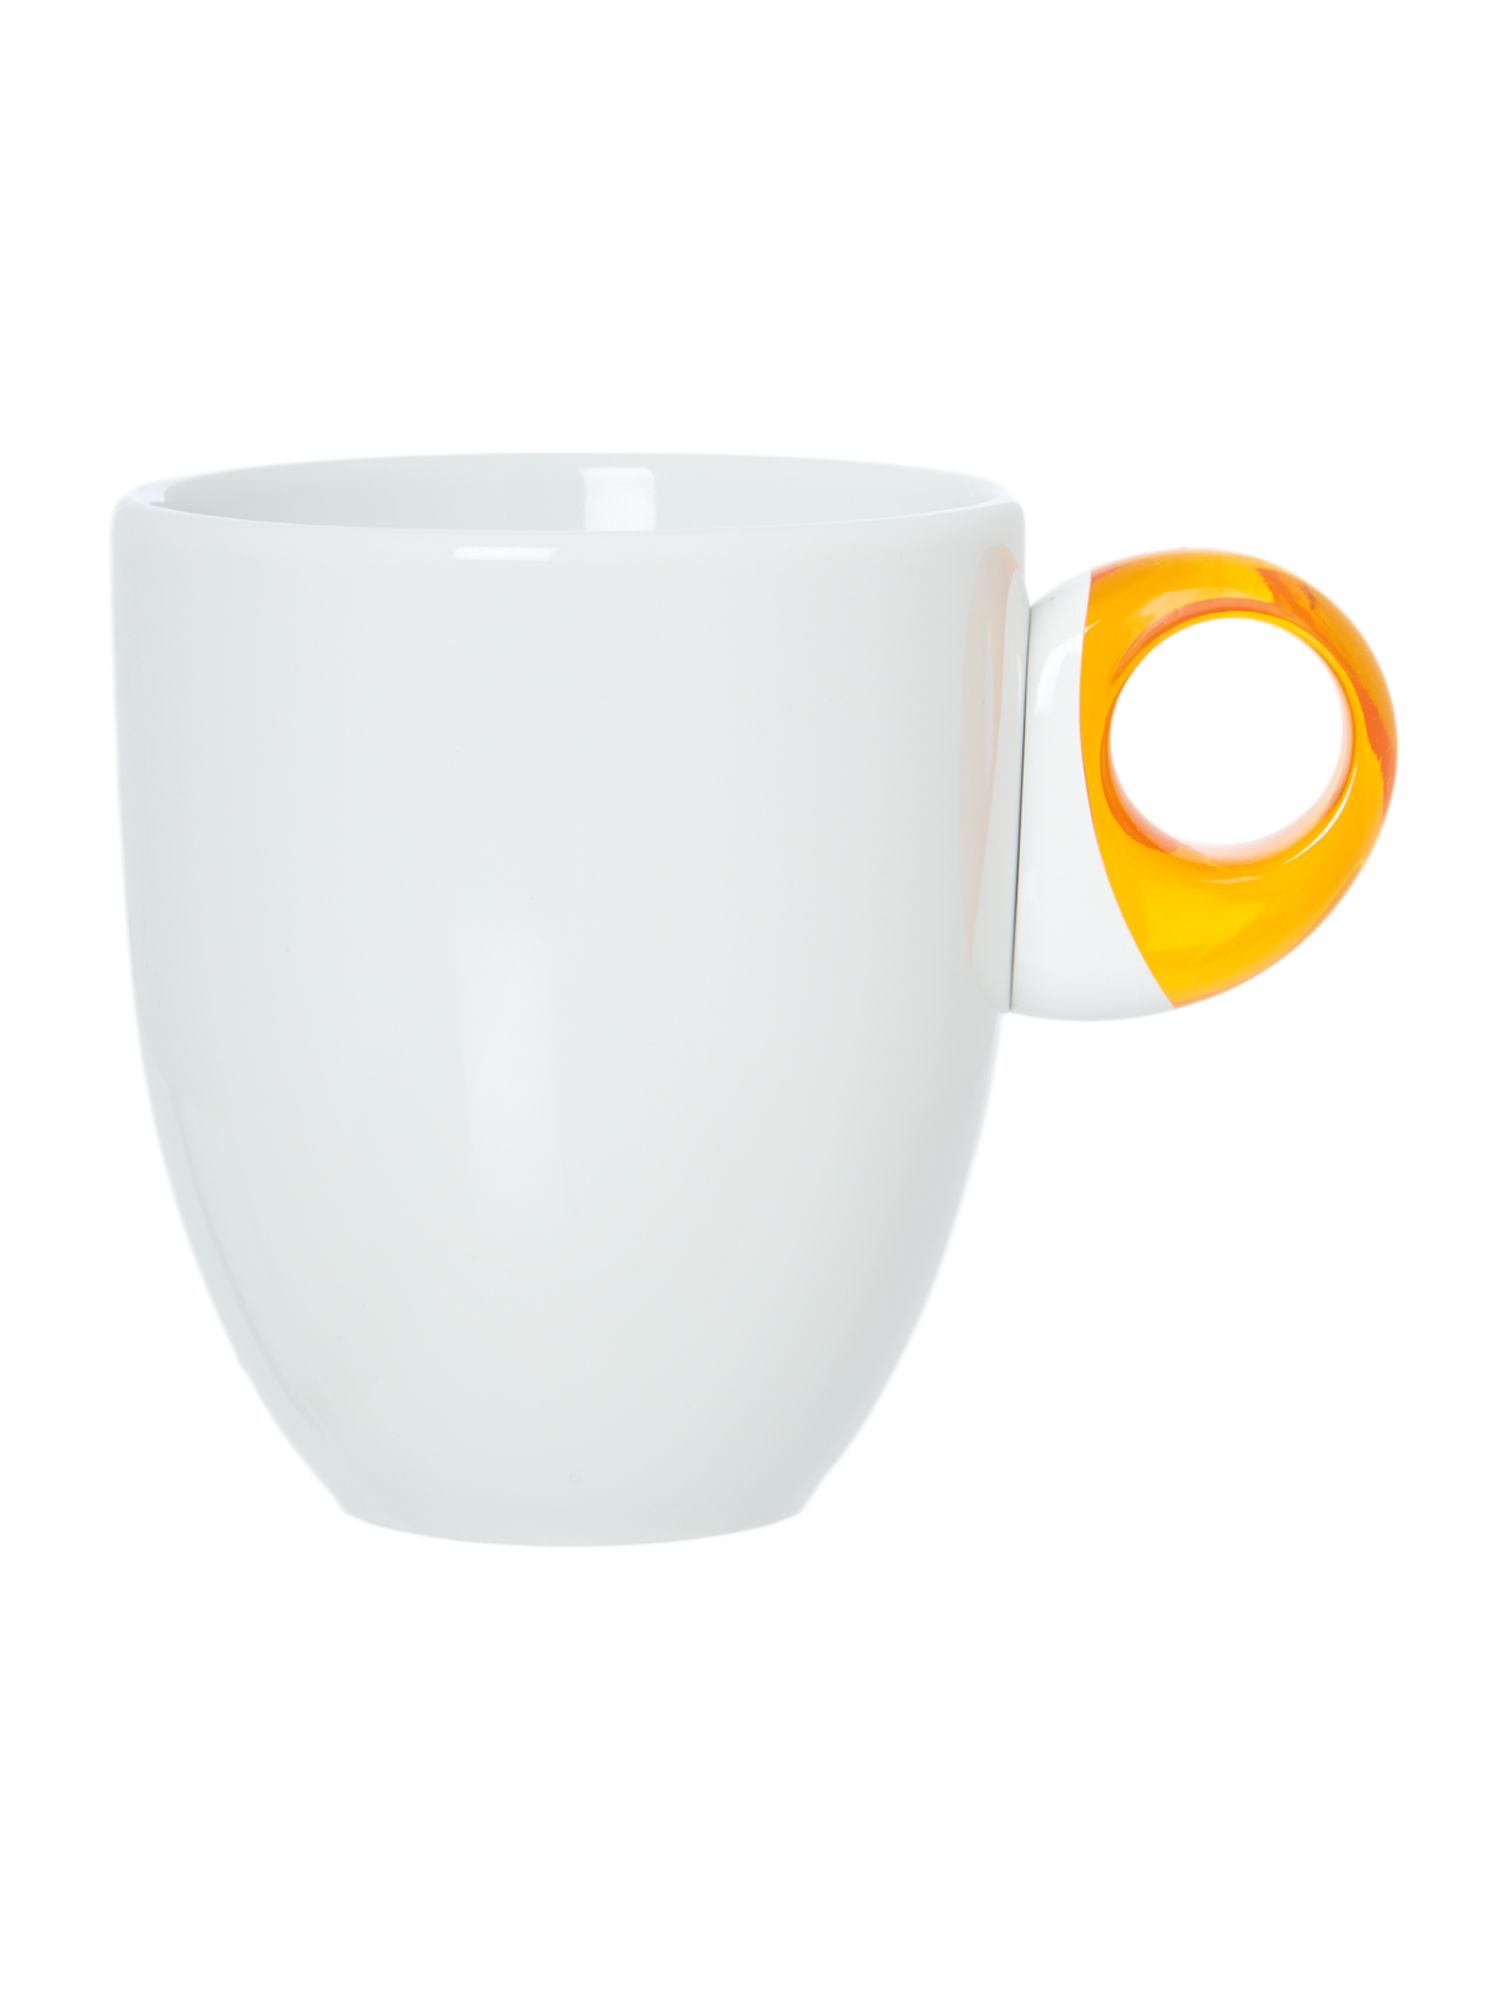 Mug Feeling Transparent Orange